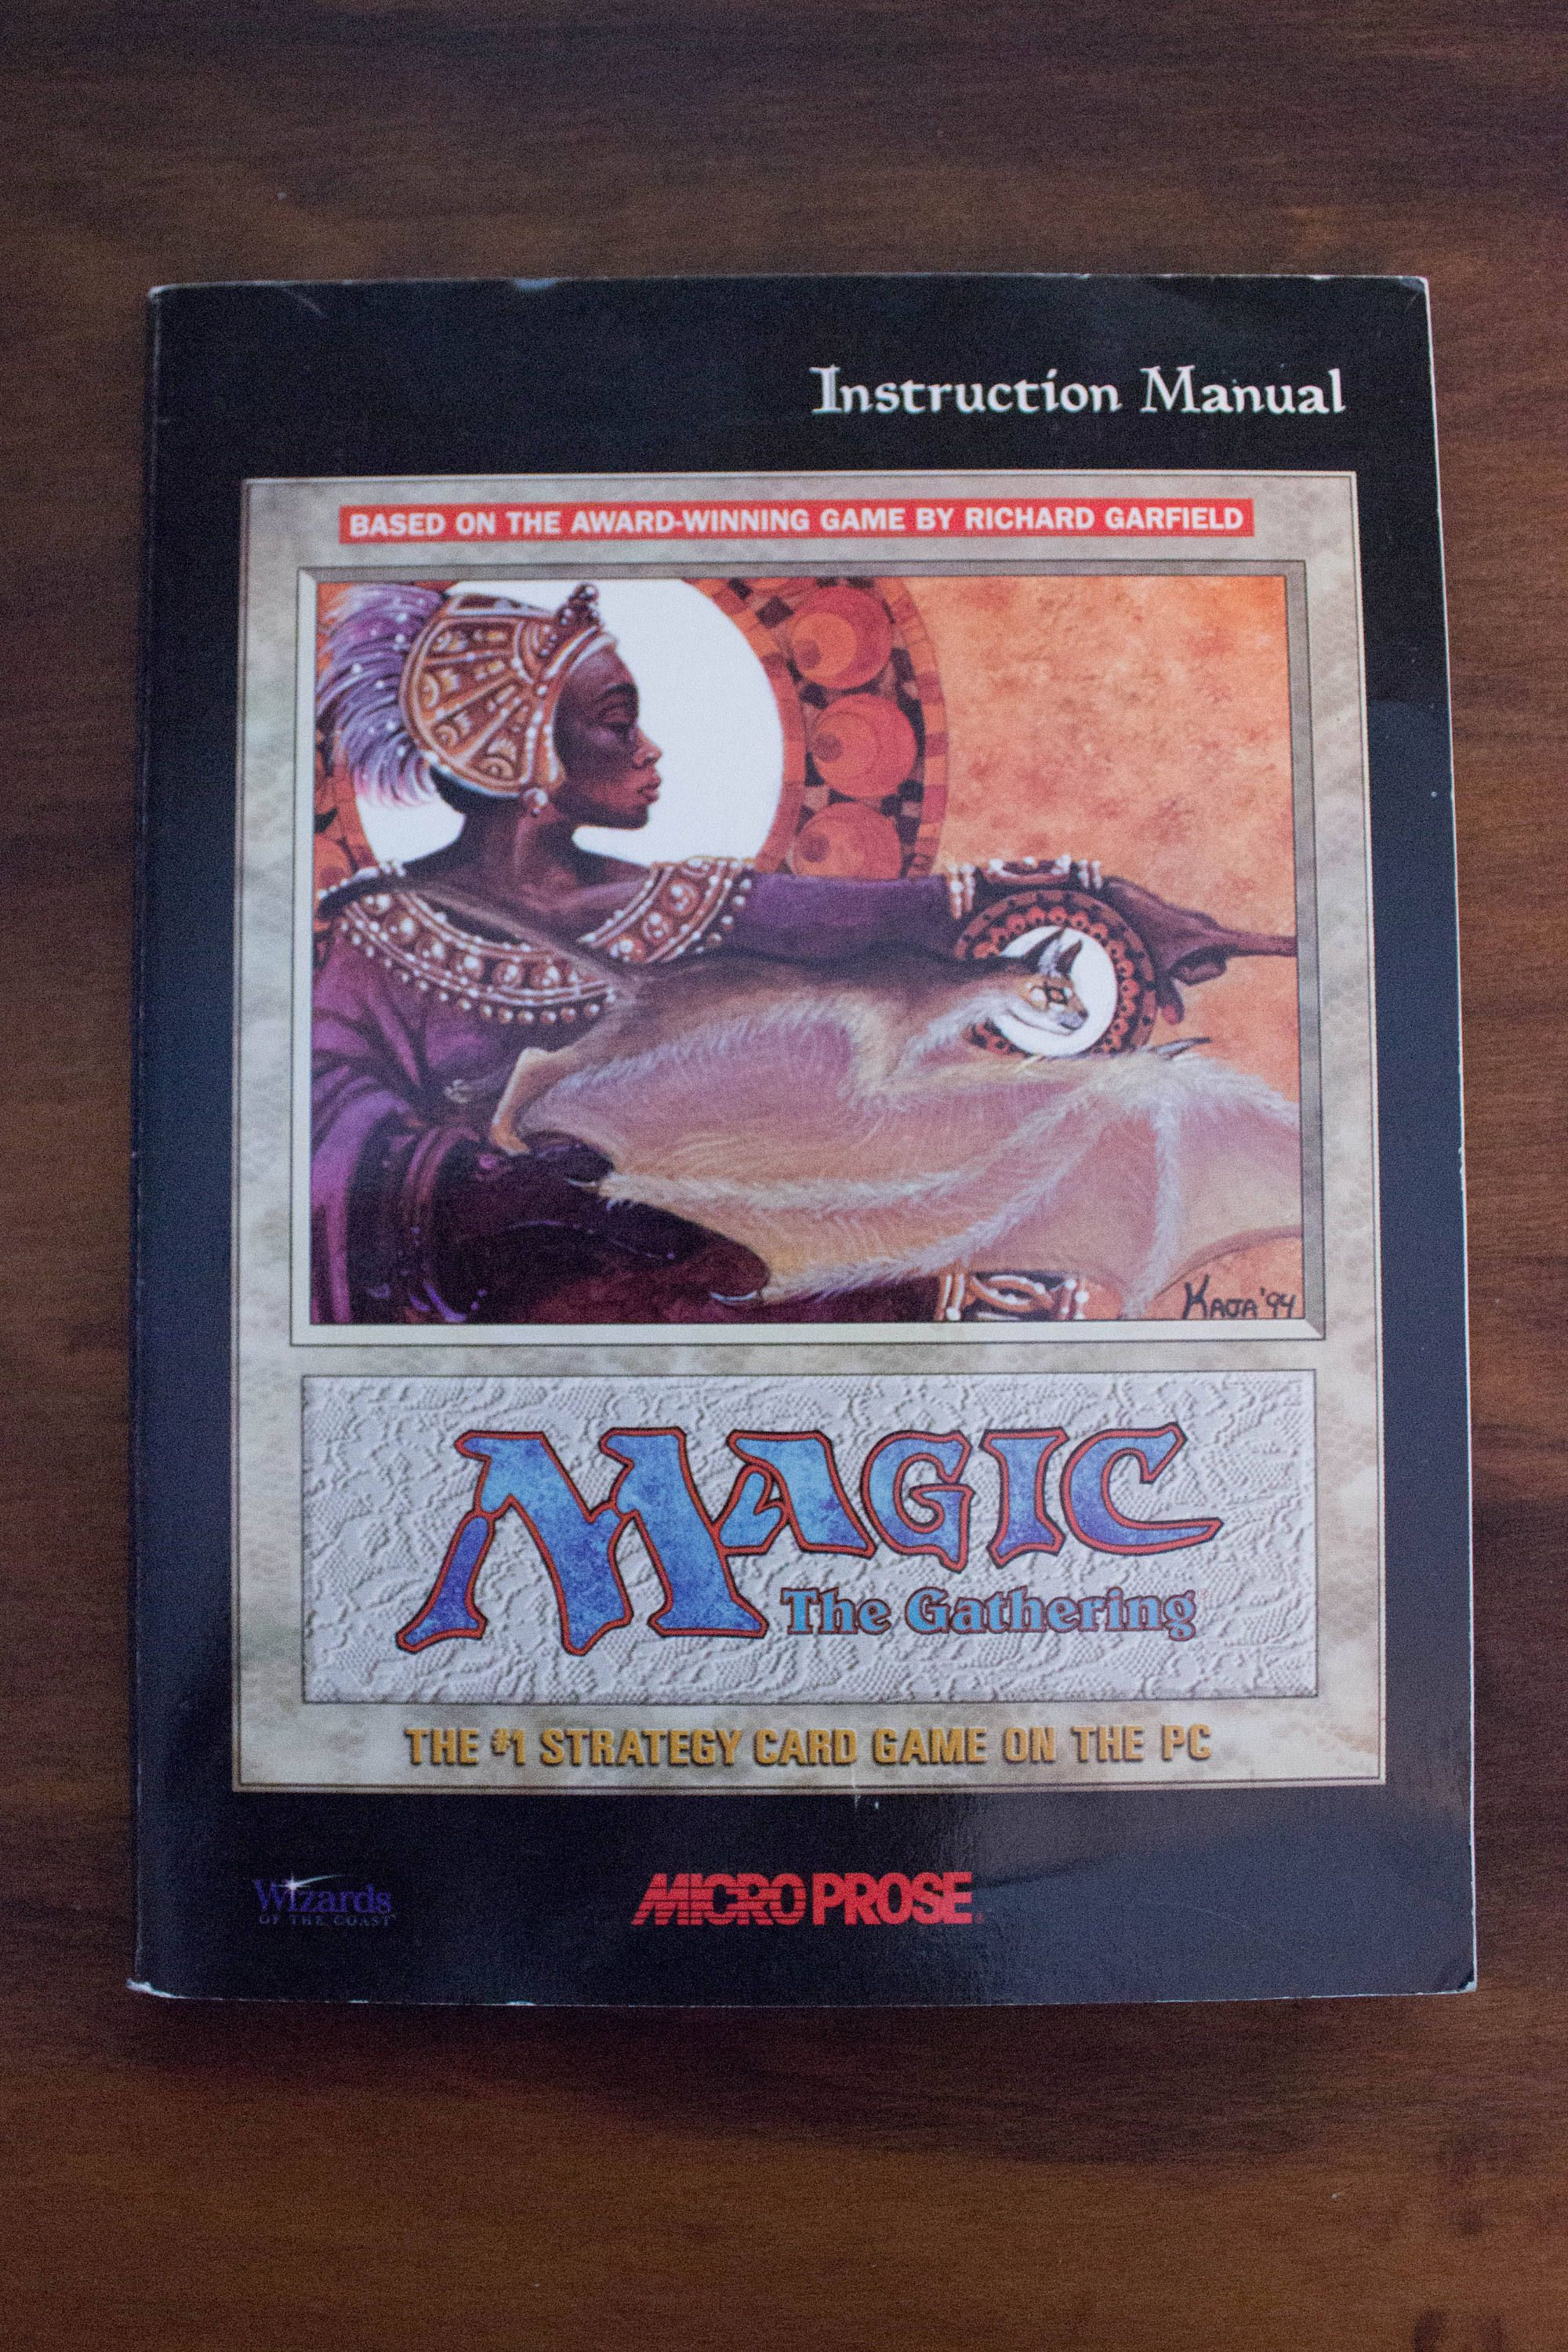 1997 magic the gathering micro prose pc game instruction manual book rh pinterest com For Wild Game Camera Instruction Manual Toy Instruction Manual